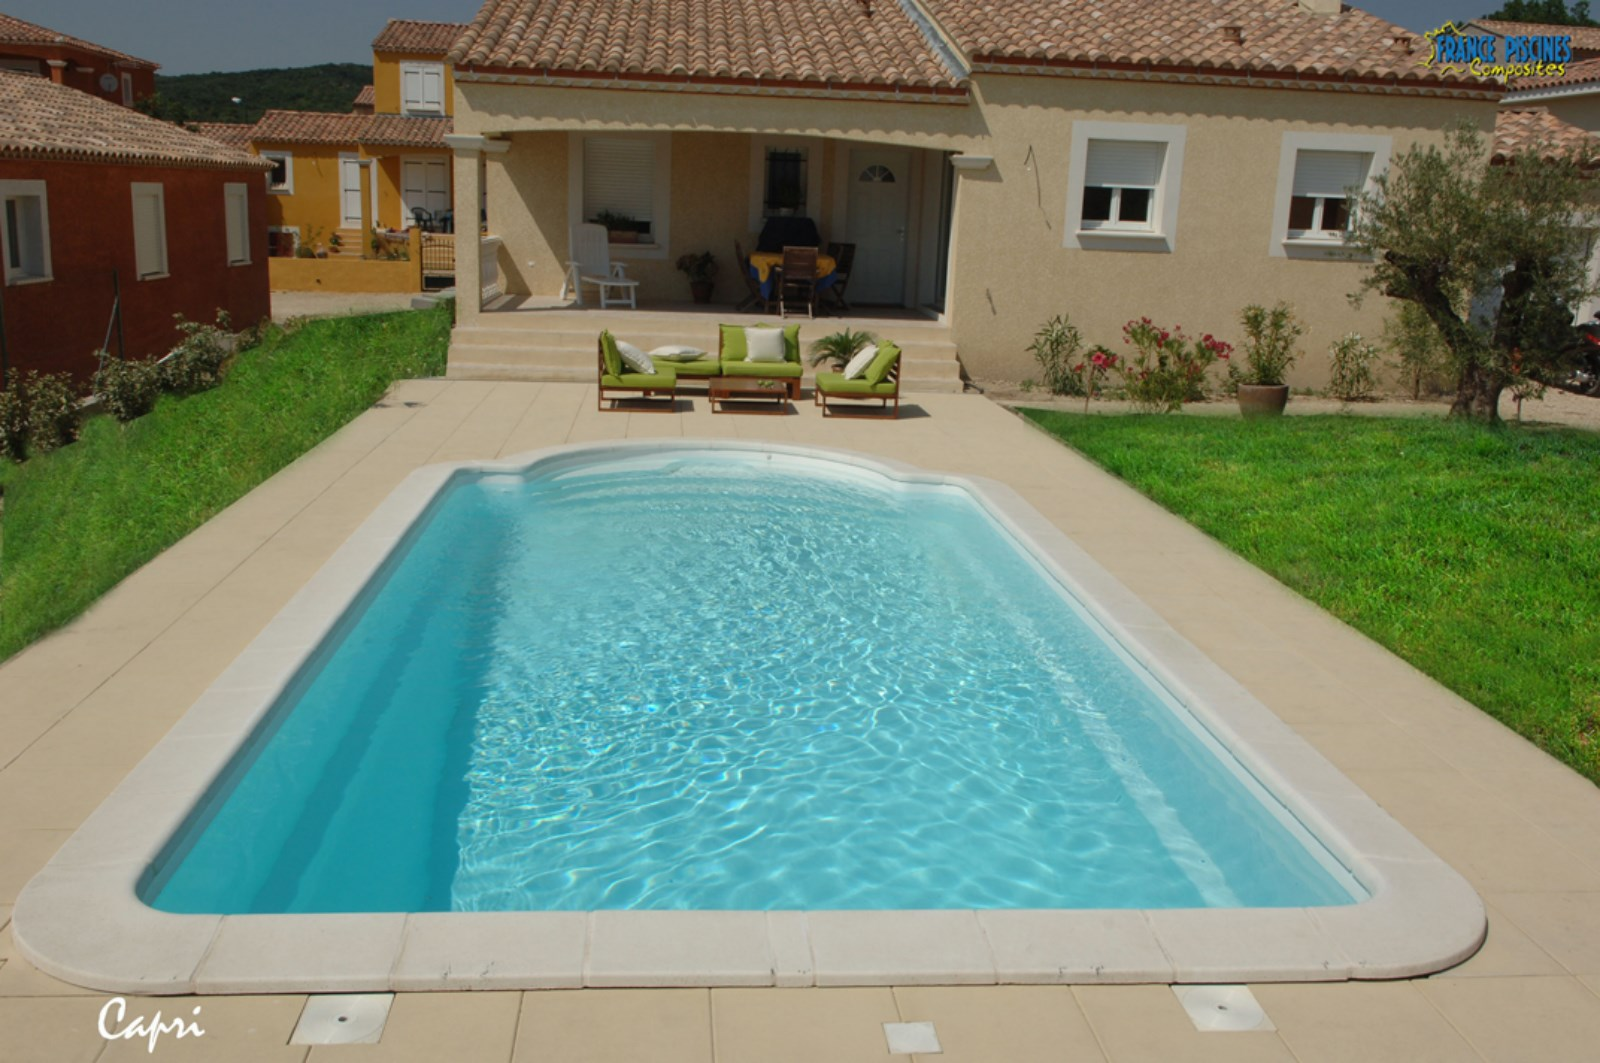 Comment installer une piscine coque polyester piscine for Construction piscine 8x4